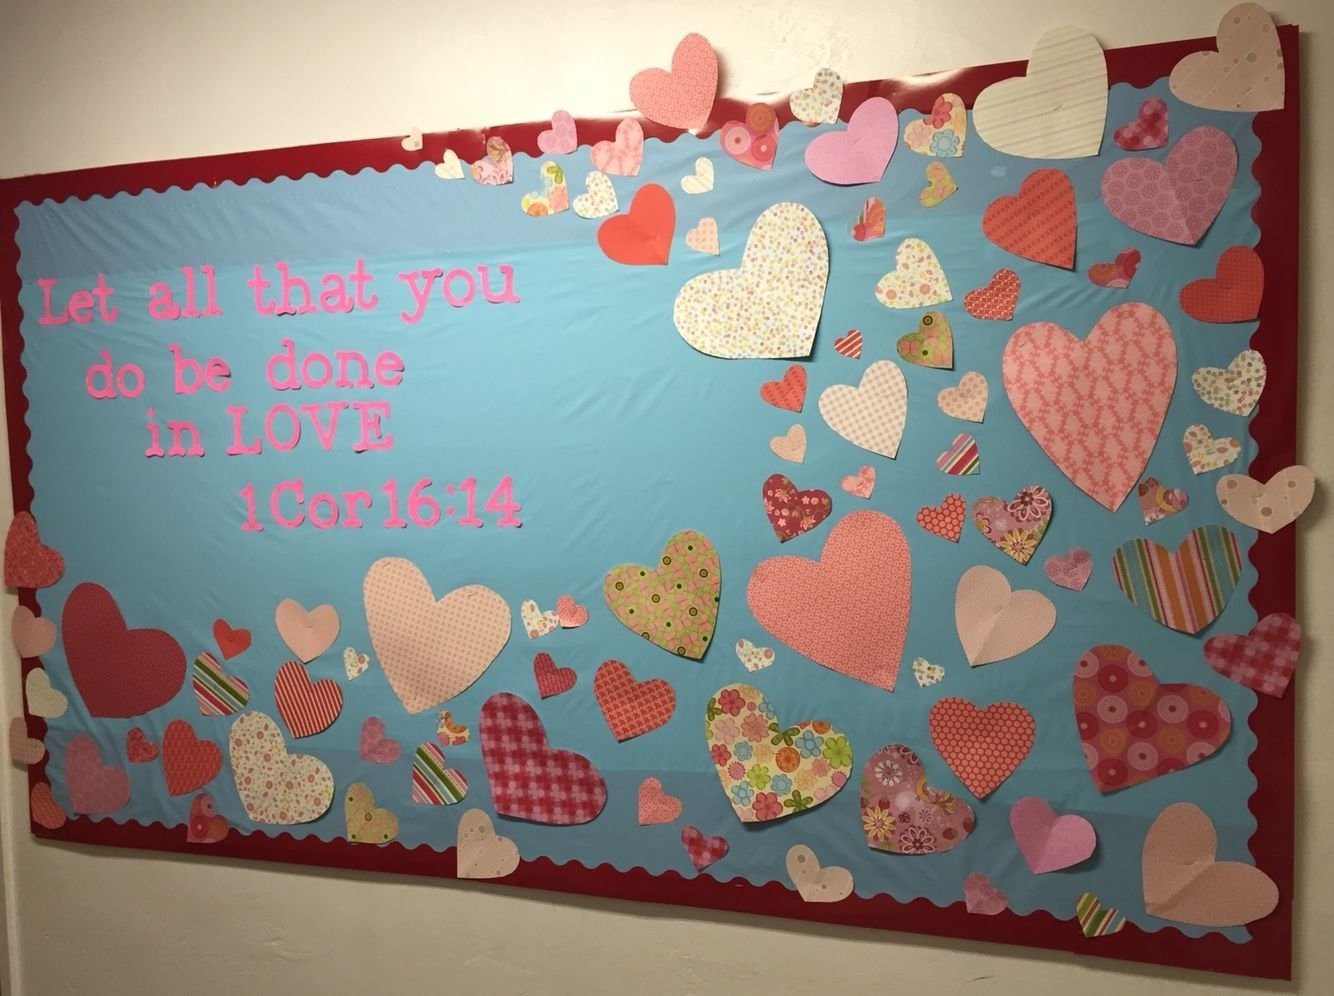 10 Cute February Bulletin Board Ideas For Preschool valentines day bulletin board for sunday school or church 4